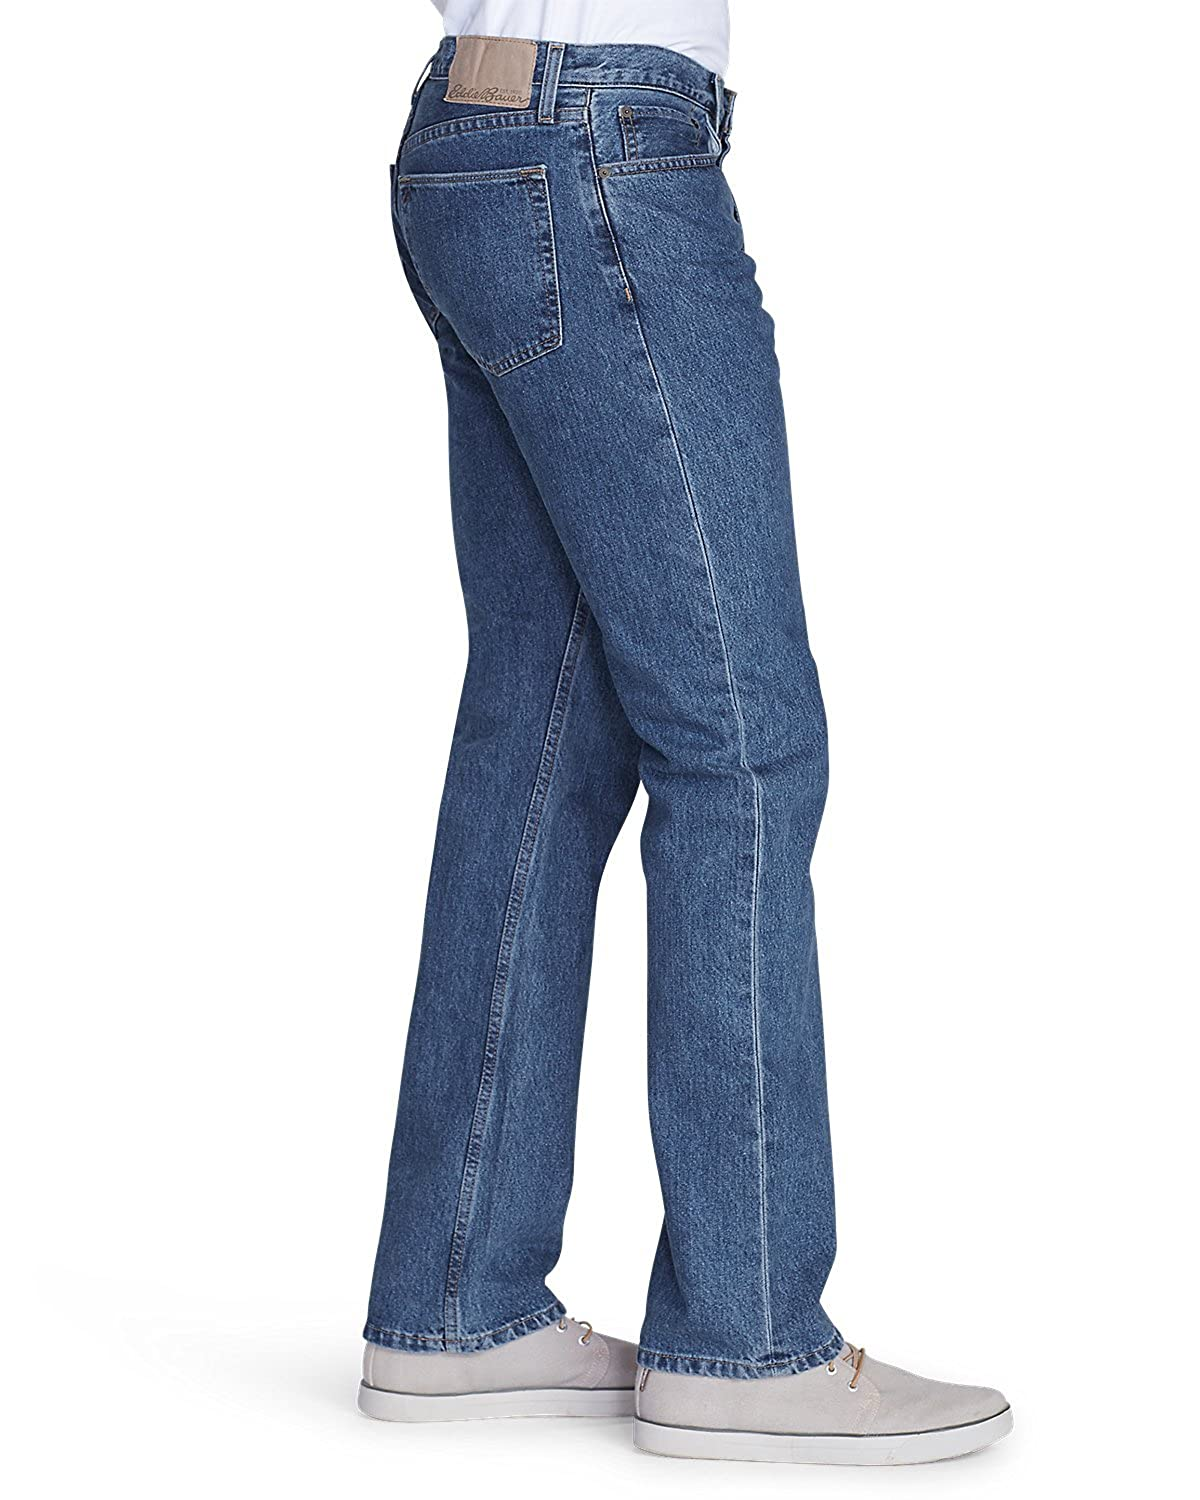 5d0ce448f4225a Eddie Bauer Mens Straight Fit Essential Jeans at Amazon Men's Clothing  store: